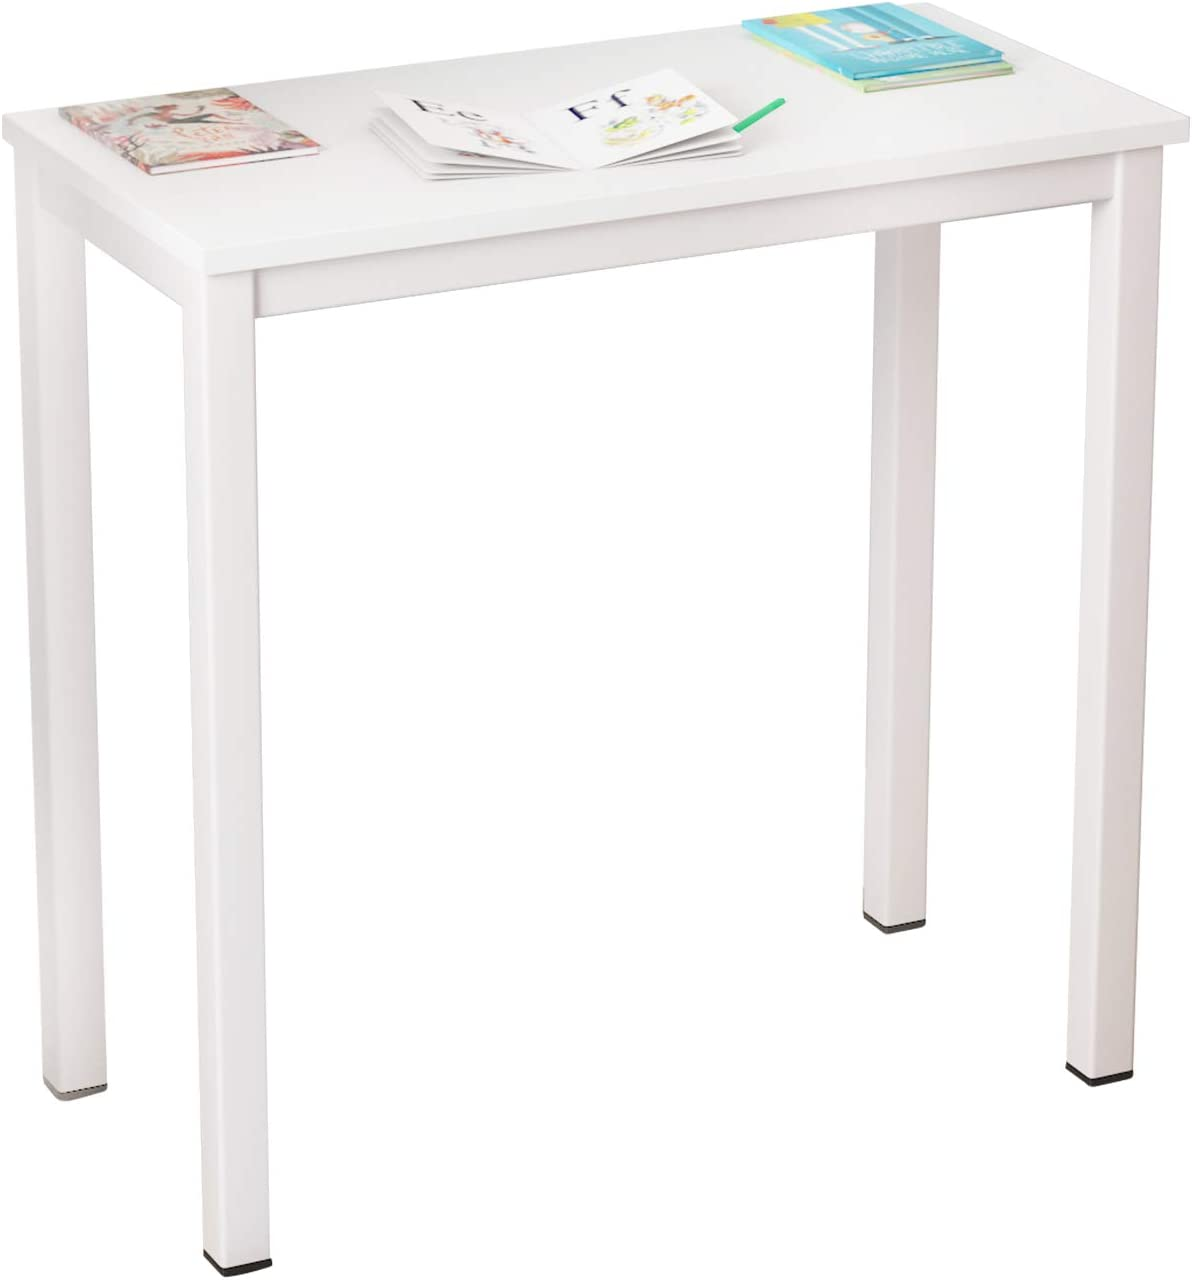 DlandHome 31.5 Inches Small Computer Desk for Home Office Folding Table Writing Table for Small Spaces Study Table Laptop Desk Black (White)